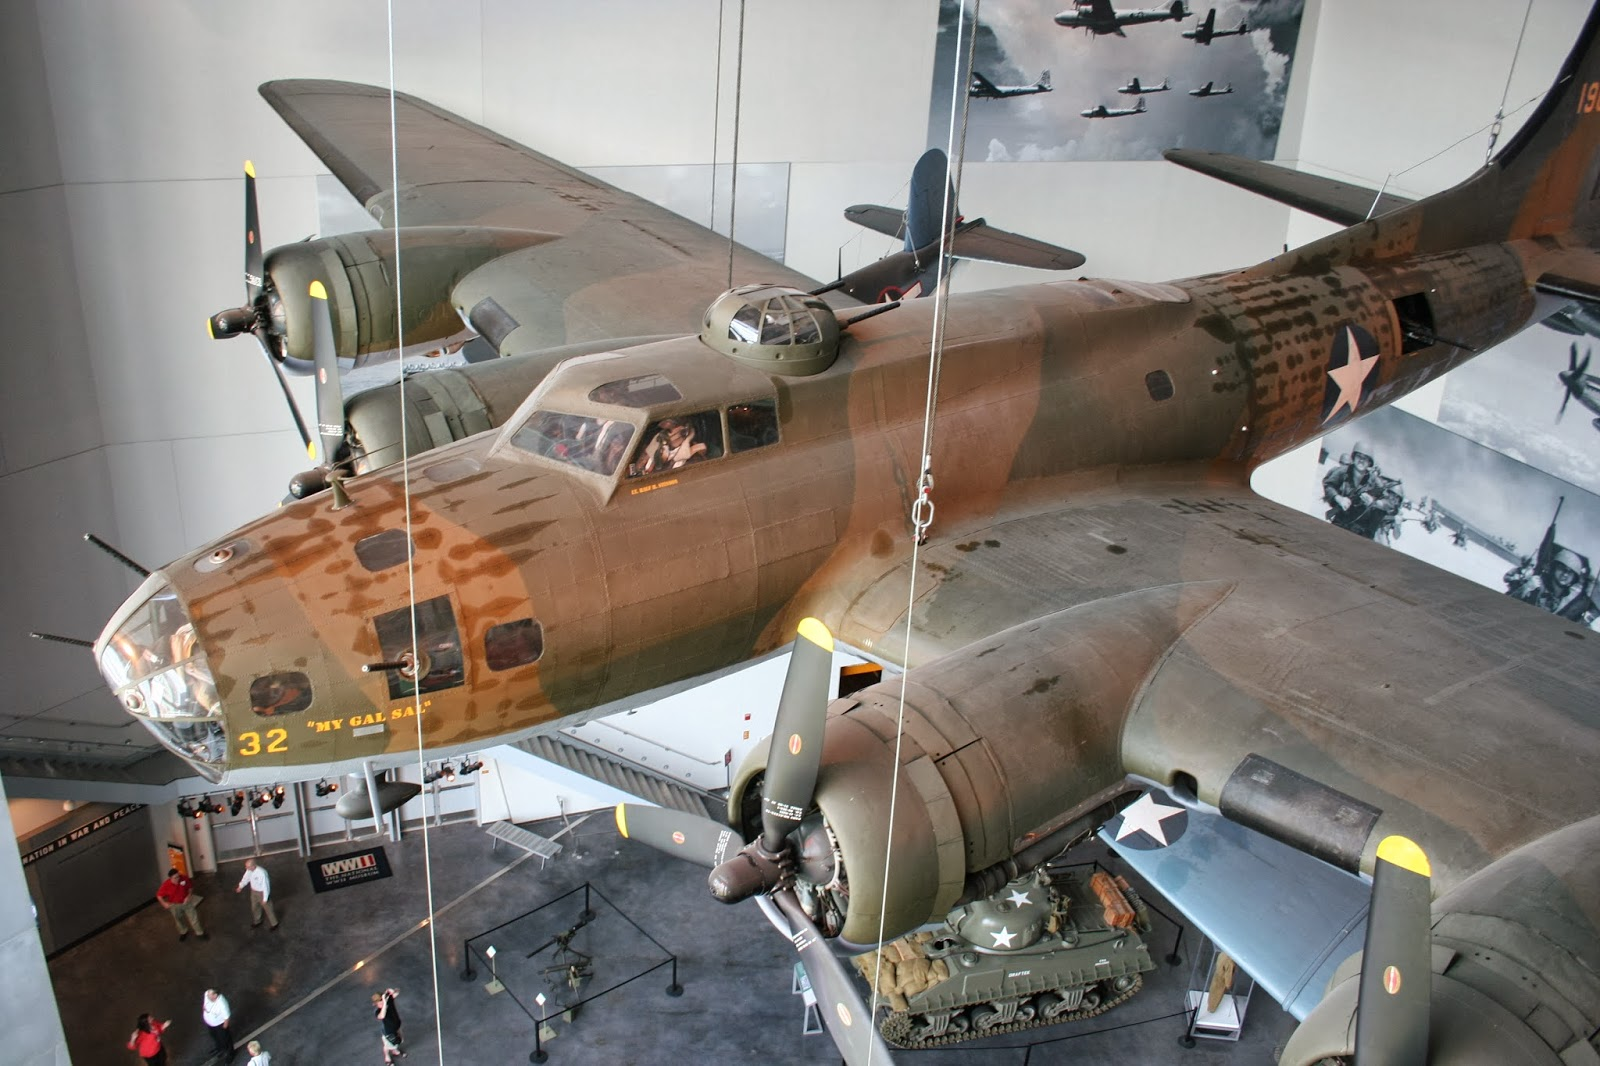 national wwii museum essay contest National wwii museum student essay contest - middle & high school $1,000 12/29/2017 albuquerque open space scholarship $500 12/31/2017 apply for the collegeweeklive.